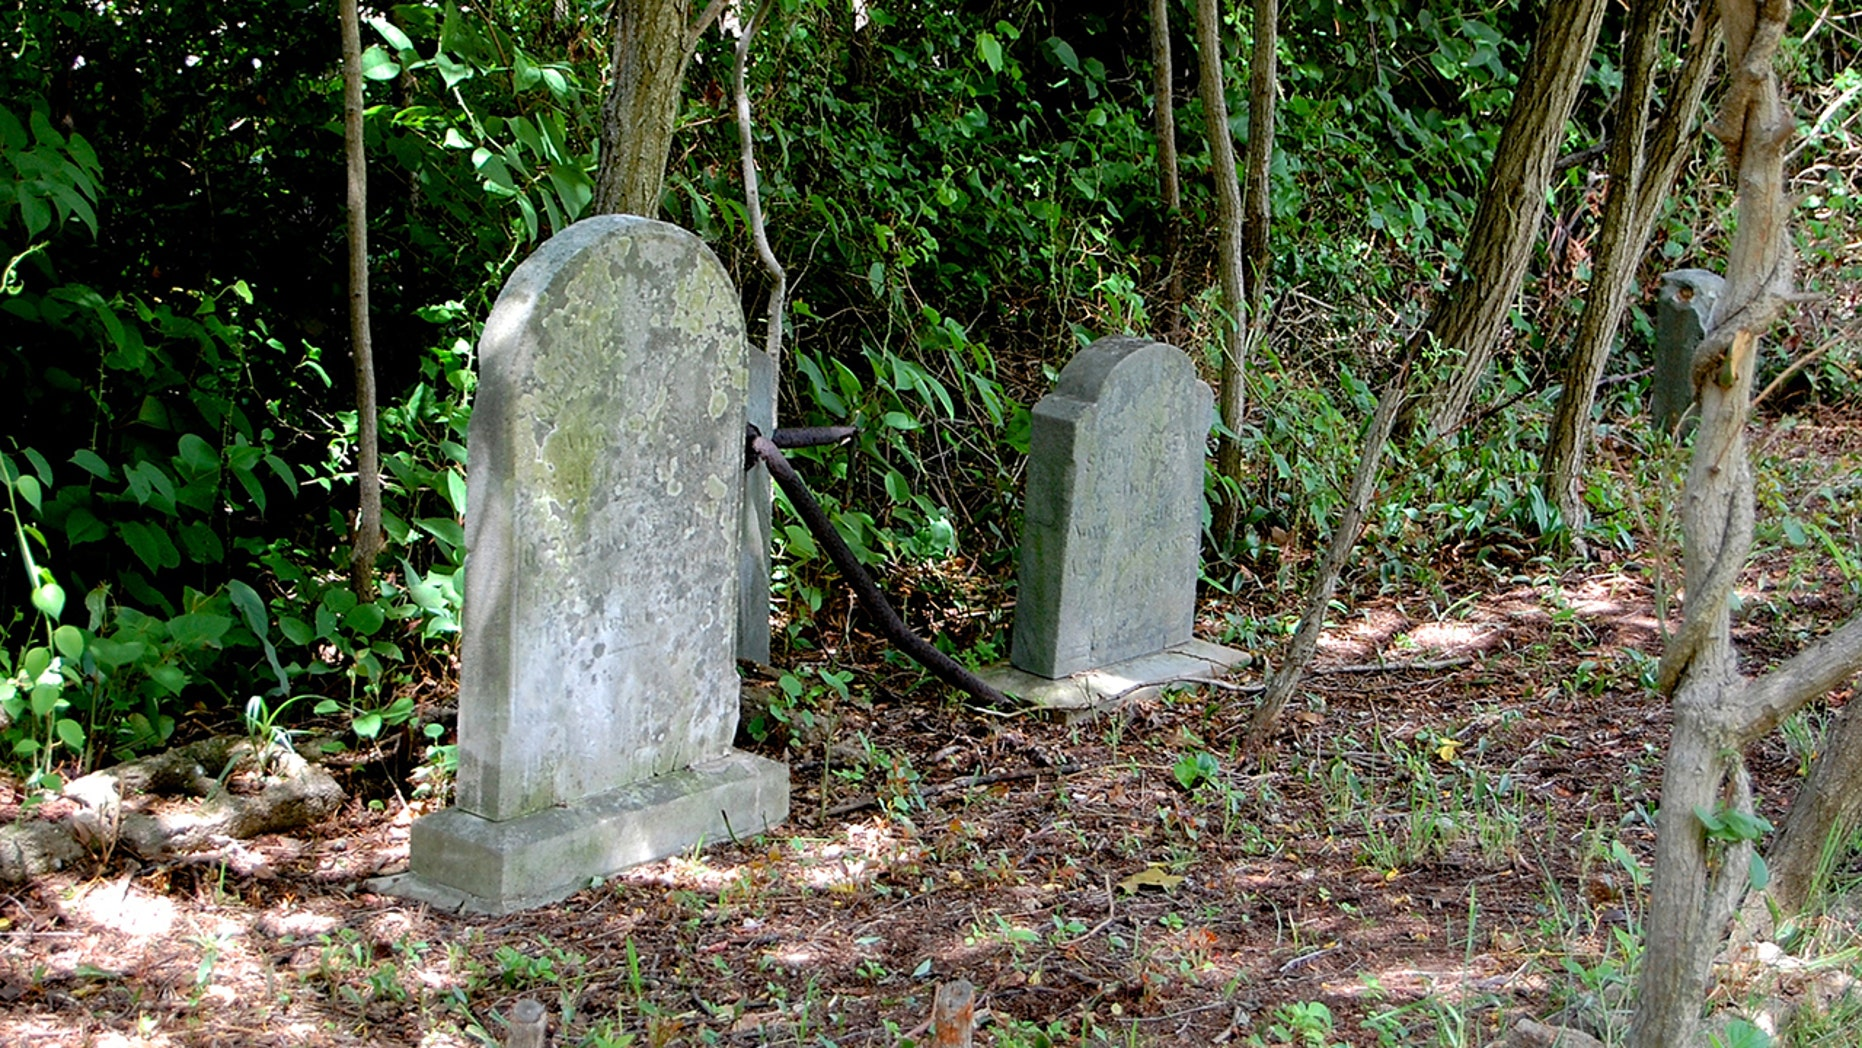 A new bill has been introduced in Congress that would preserve and document in a nationwide database the discovery of lost African-American burial sites